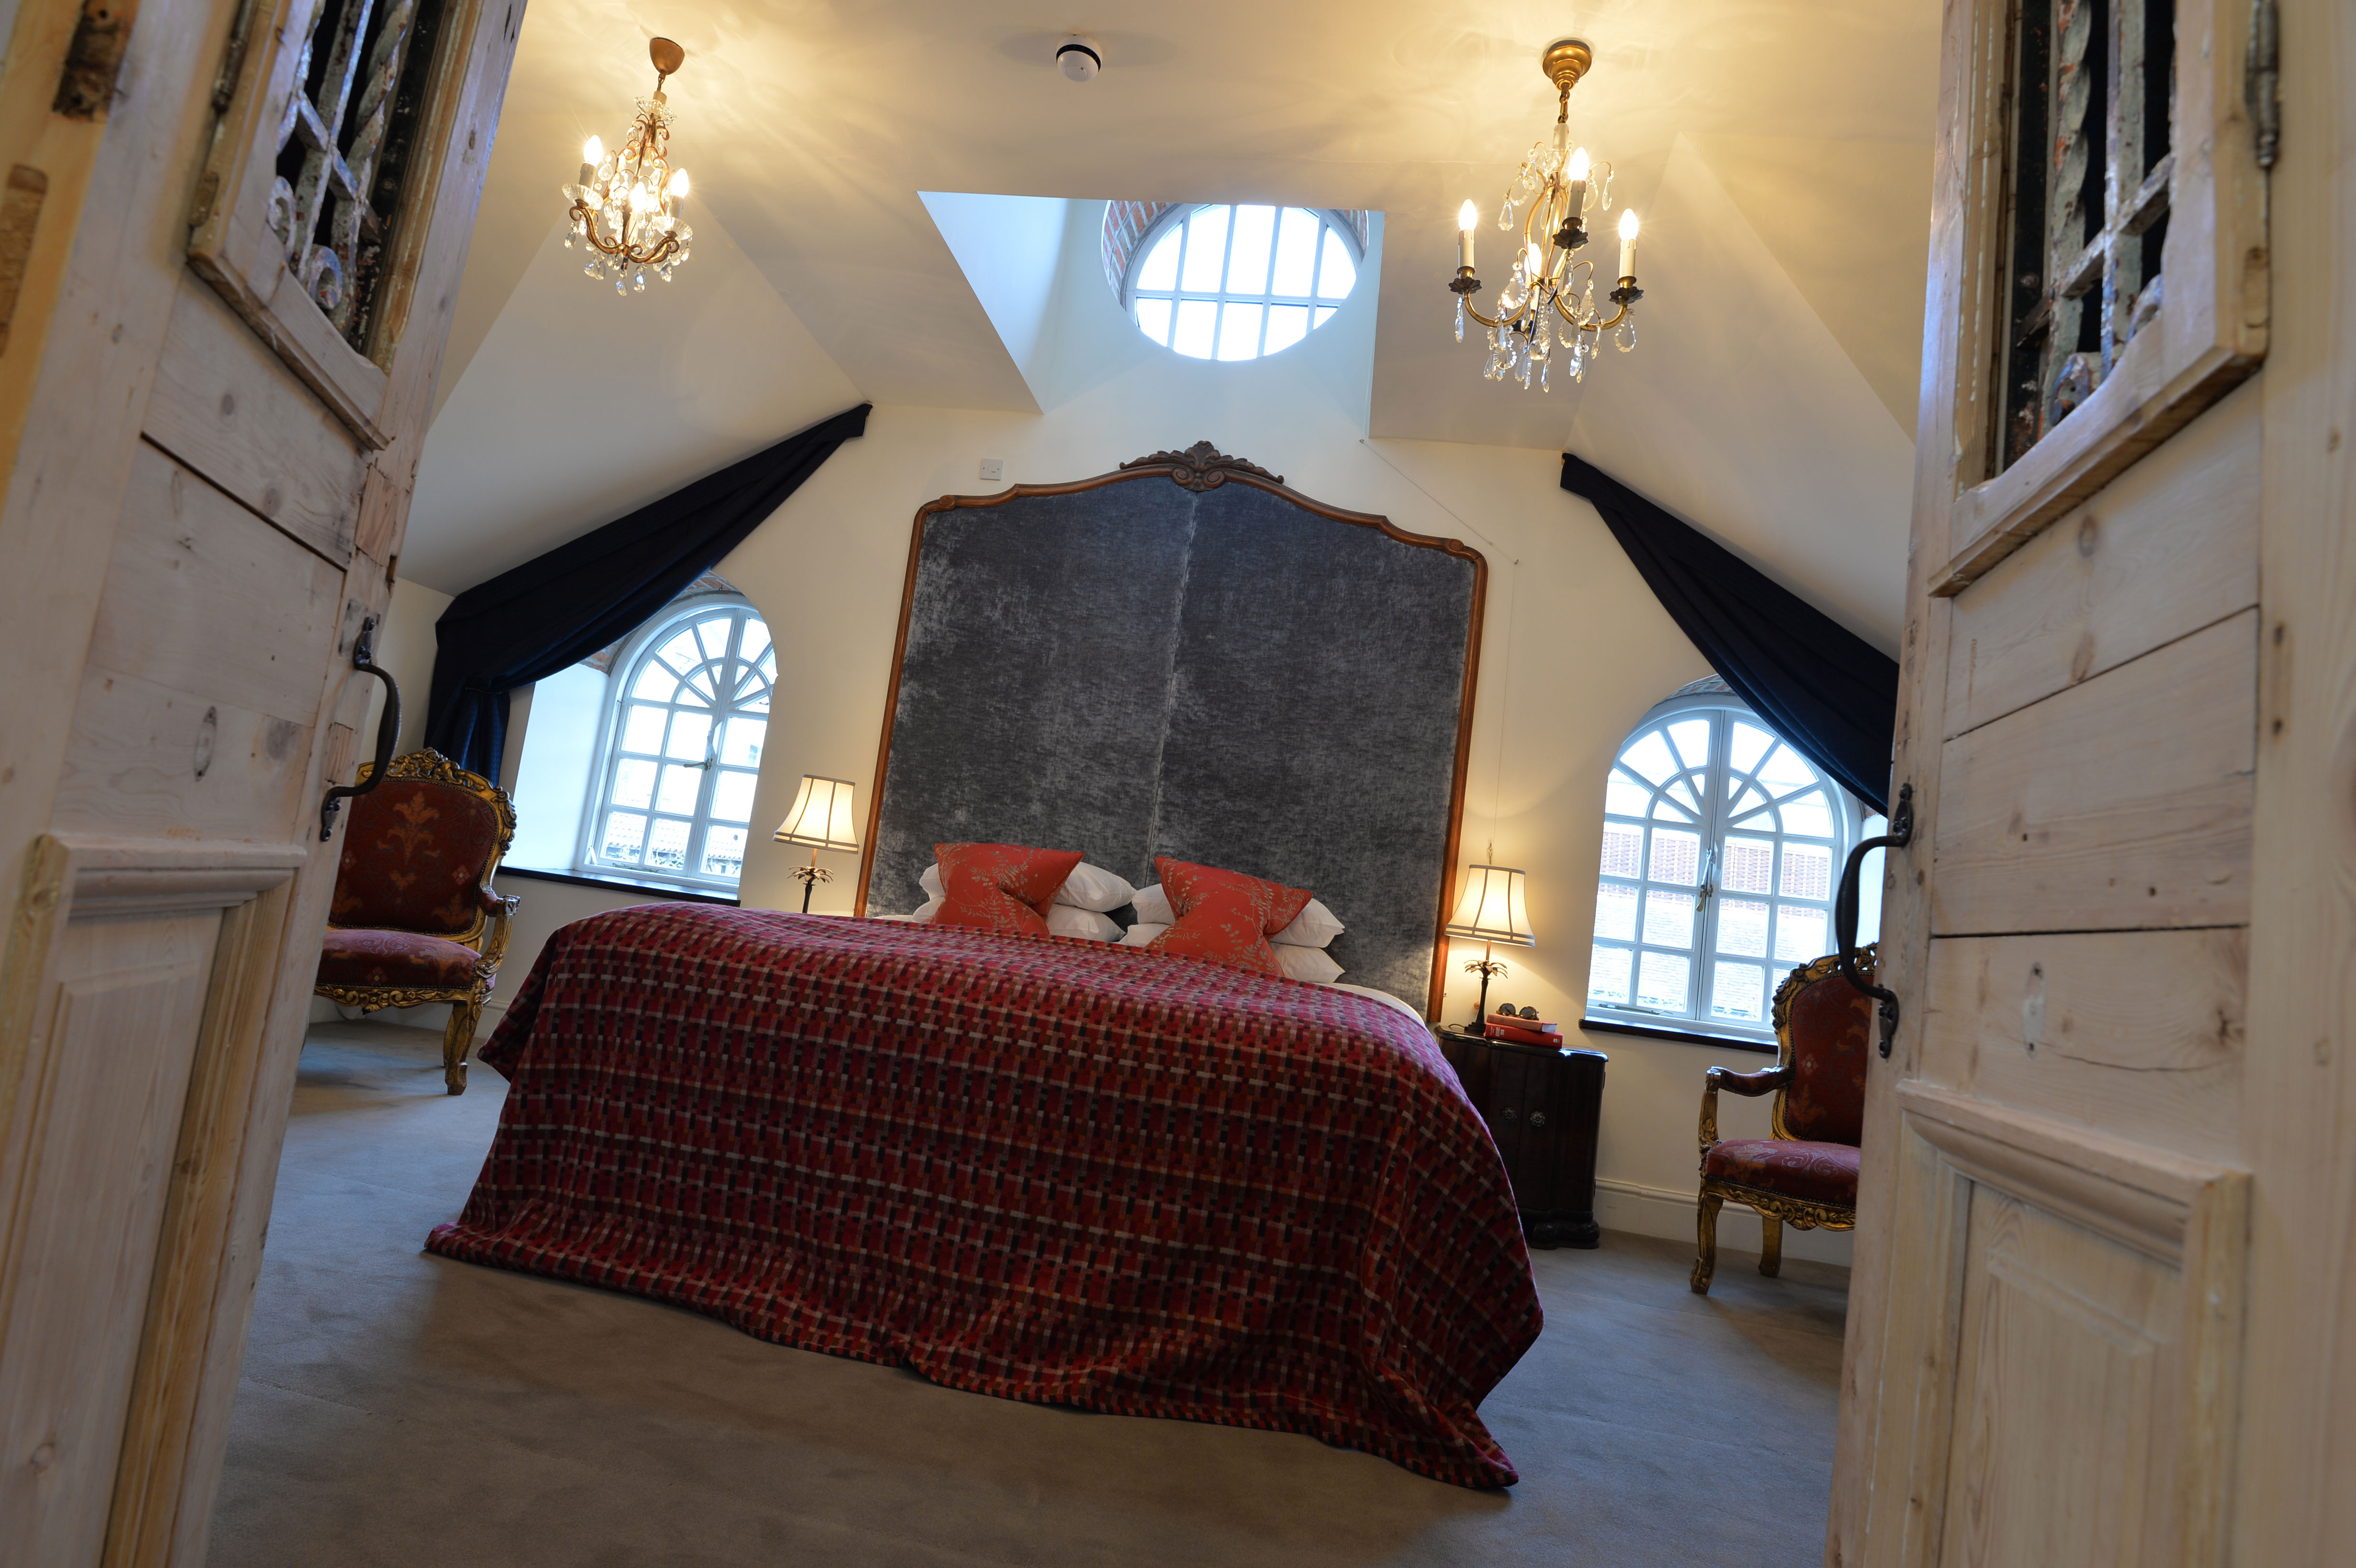 TRAVEL REVIEW: Posh hotel is perfect place for 'mumoliday' with friends